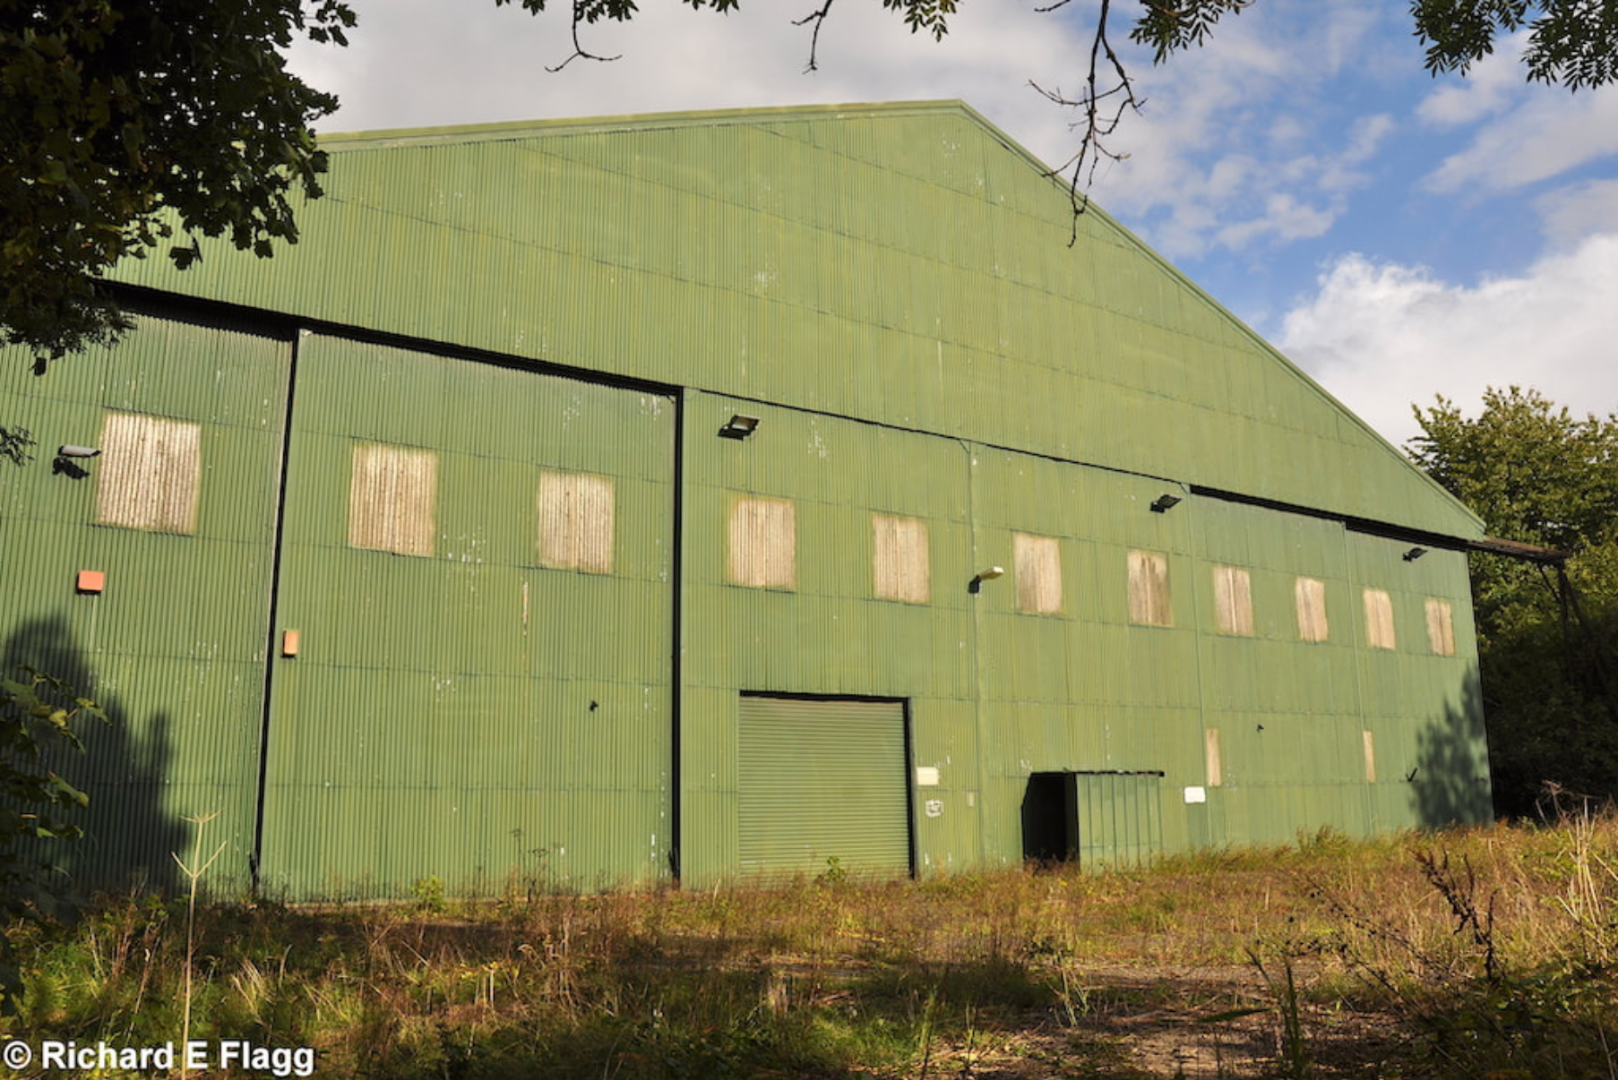 002Hangar : B1 Type Aircraft Shed (Building 5) - 28 August 2011.png